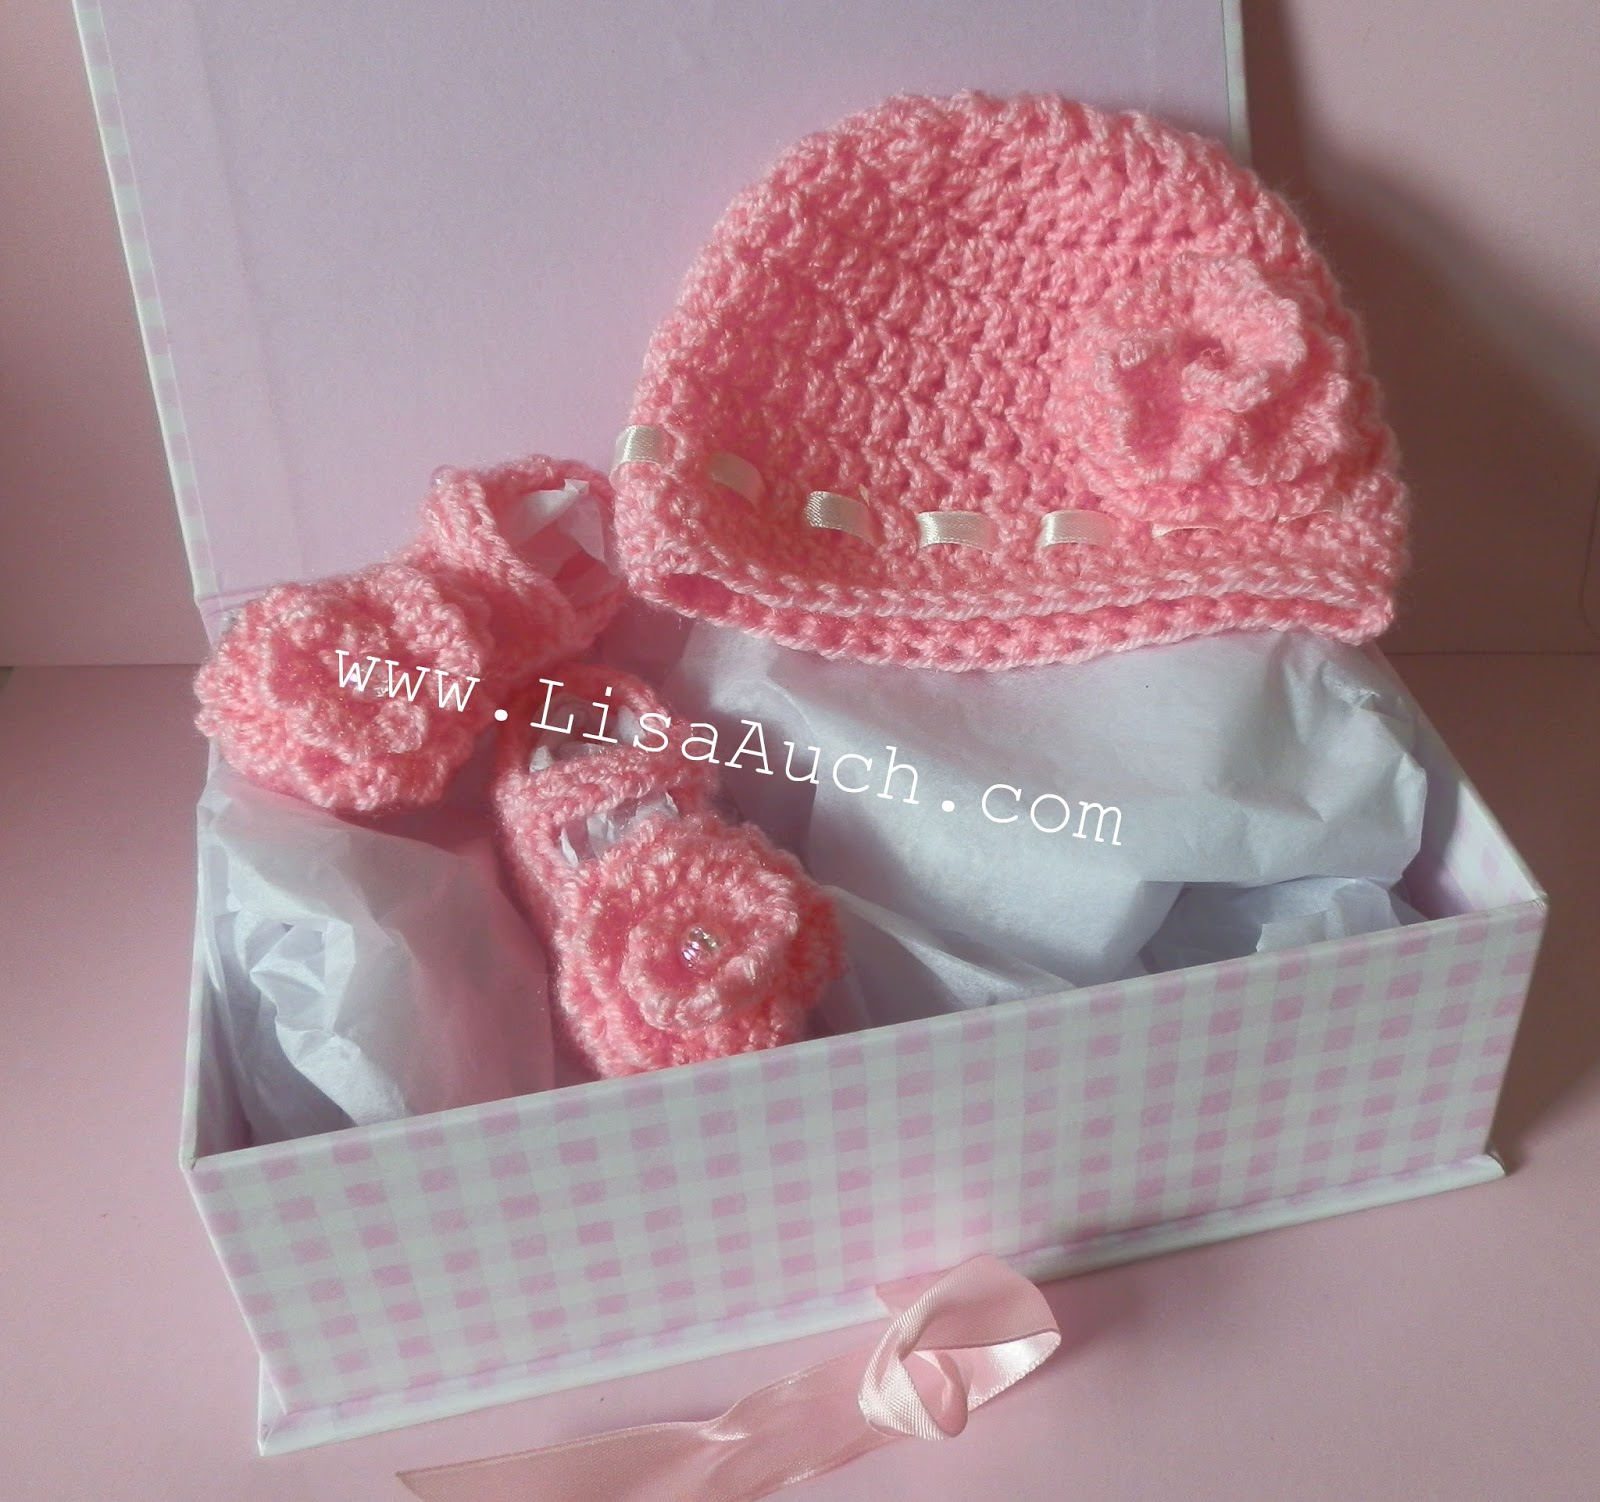 Crochet Baby Hat Pattern Instructions : FREE CROCHET BABY BUNTING SET PATTERN - Crochet and ...